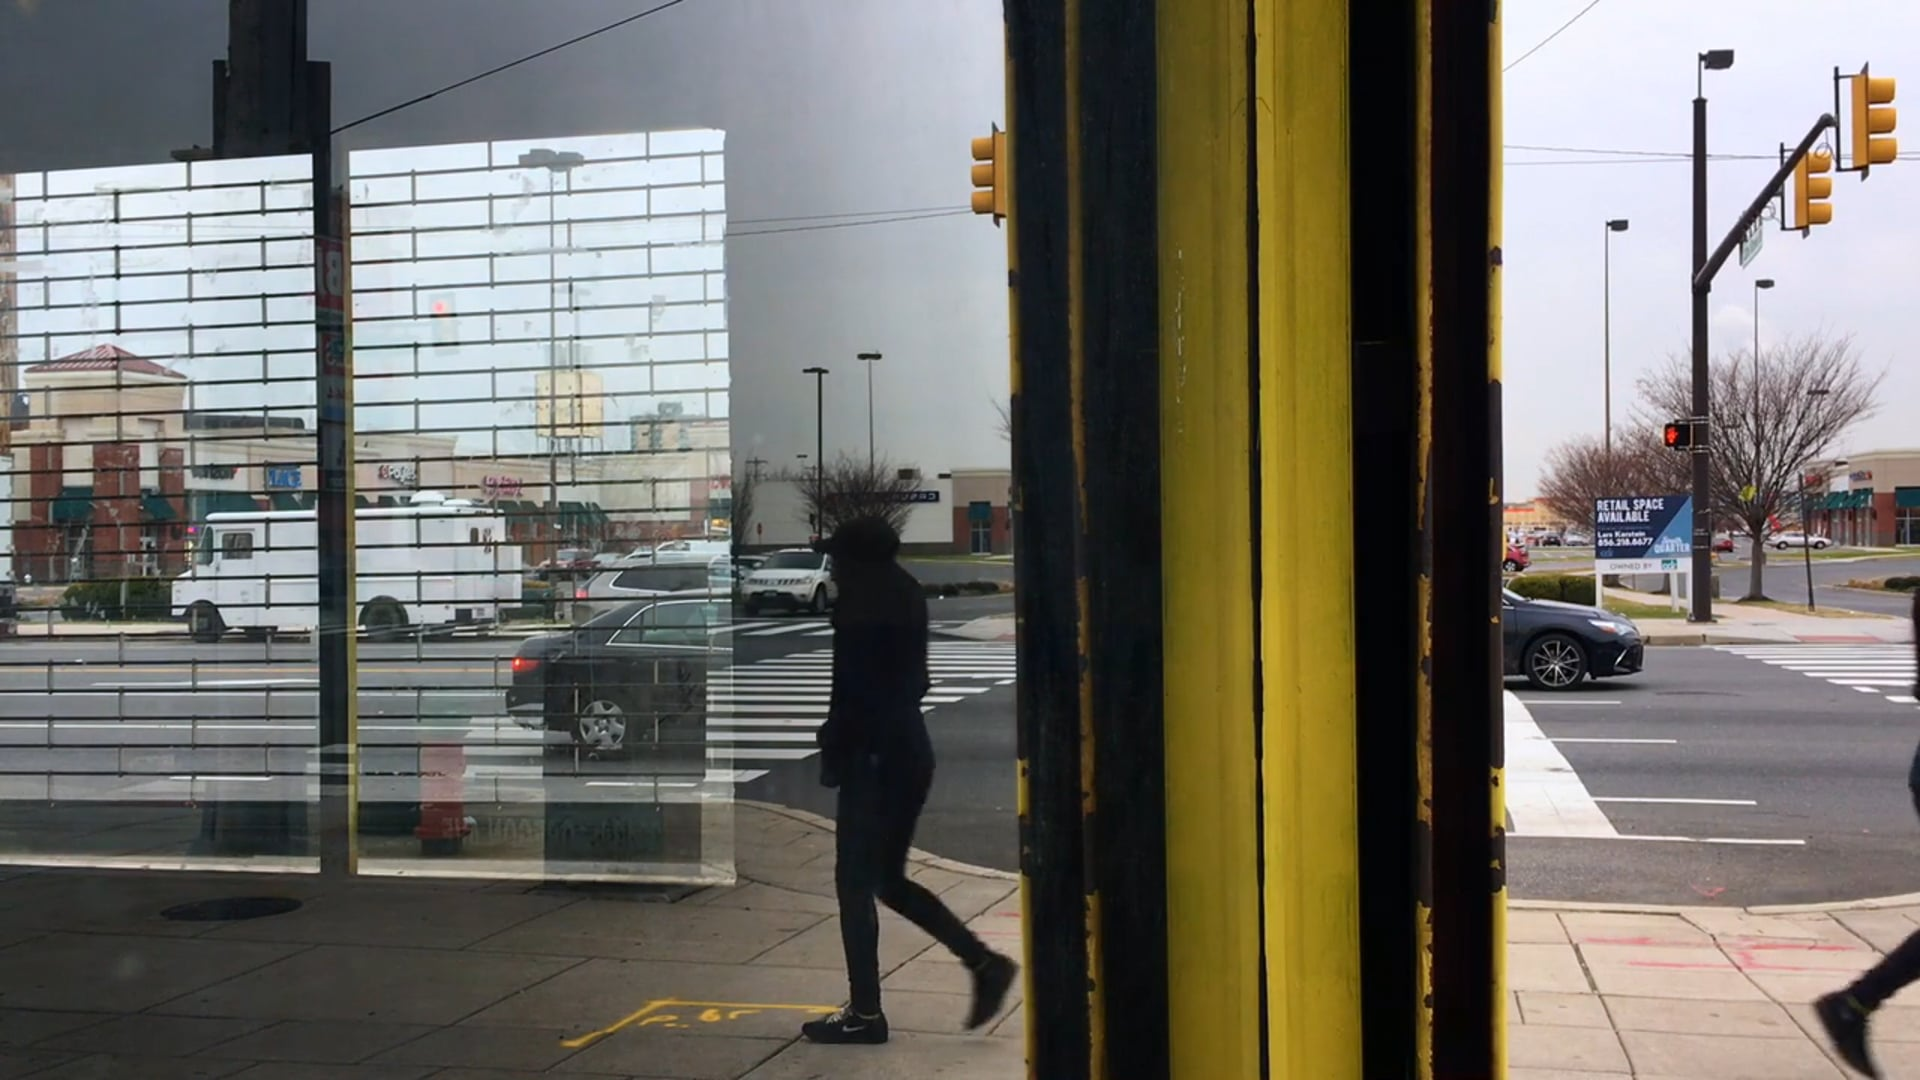 Chiasmus, 2018, 5:16 min digital video  Daily life is documented and visually collapsed through the reflective windows of a vacant commercial storefront in Philadelphia. The city intersection is reflected in the window pictured and through the store's security roll gate. The intersection is flanked by strip malls in South Philadelphia, an urban area experiencing gentrification. The landscape of the city is visually confused alongside a sense of the neighborhood's rapid economic shift.